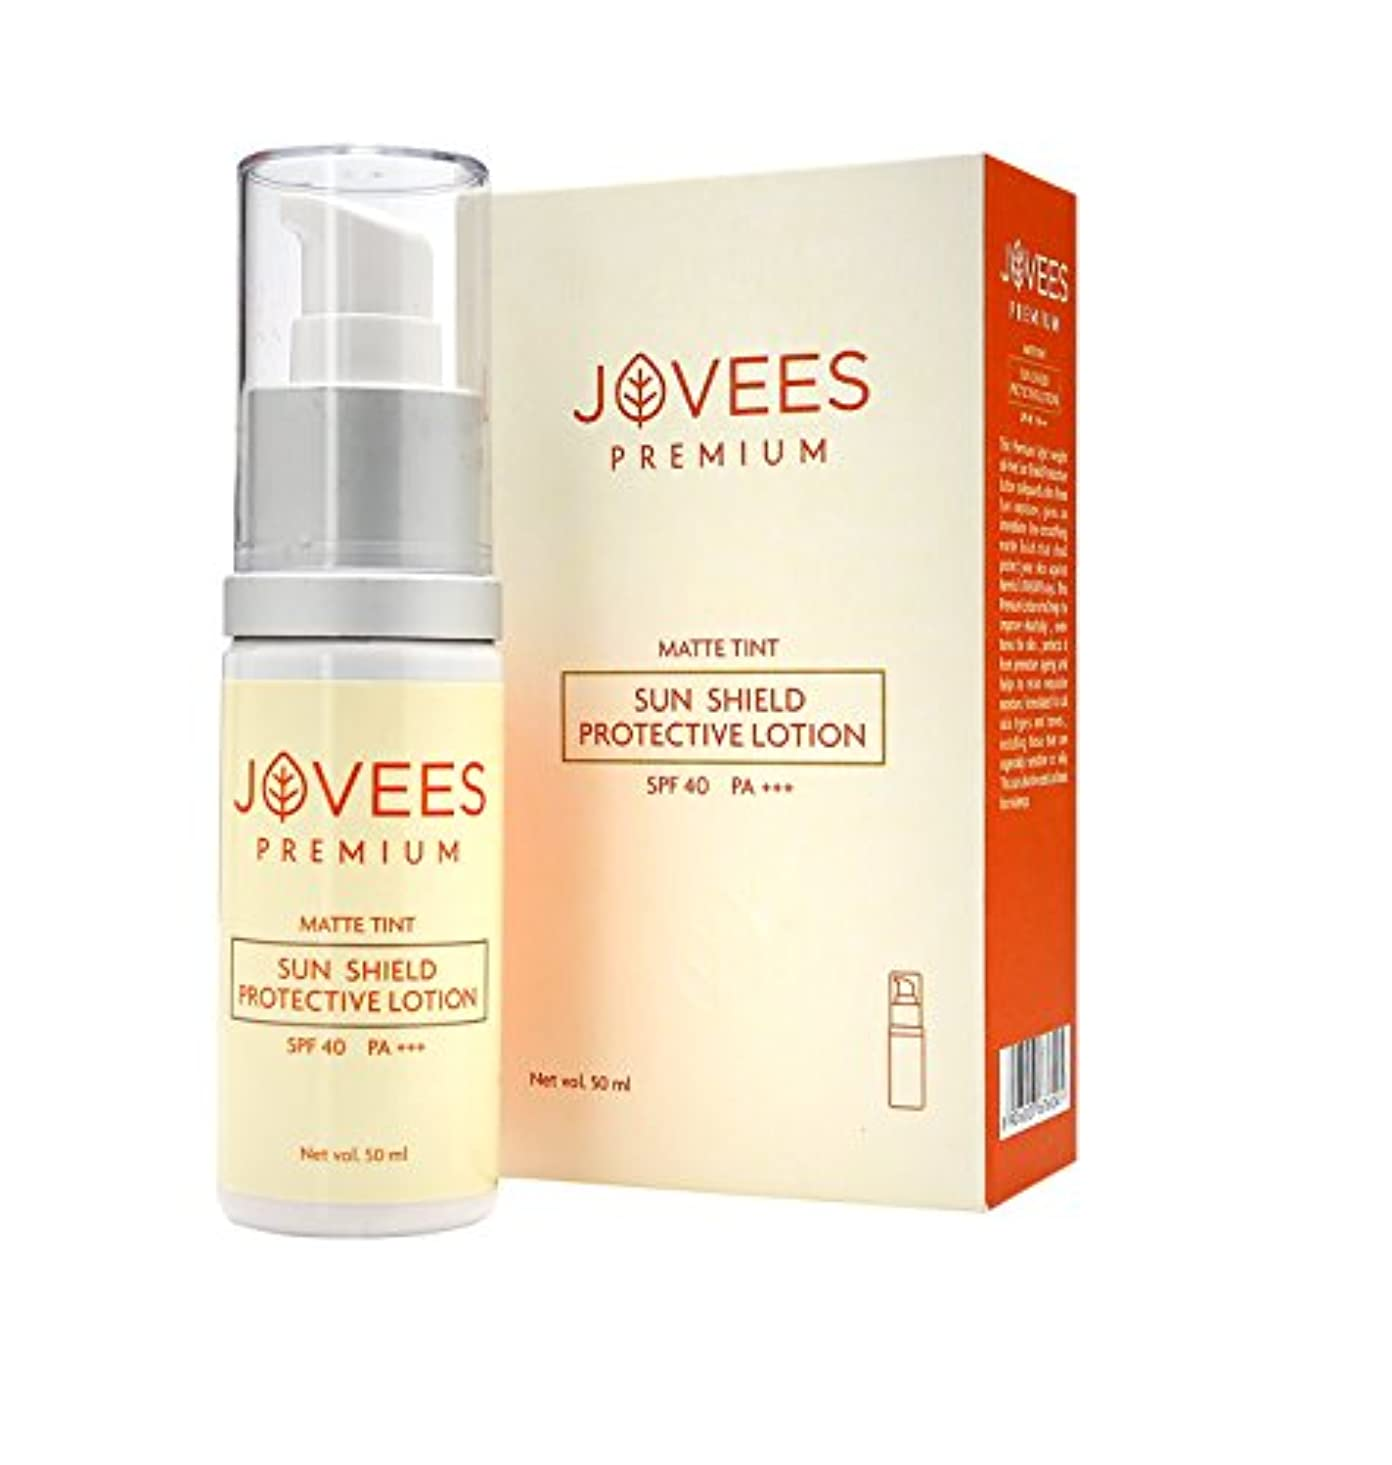 Jovees Premium Sun Shield Lotion, 50ml